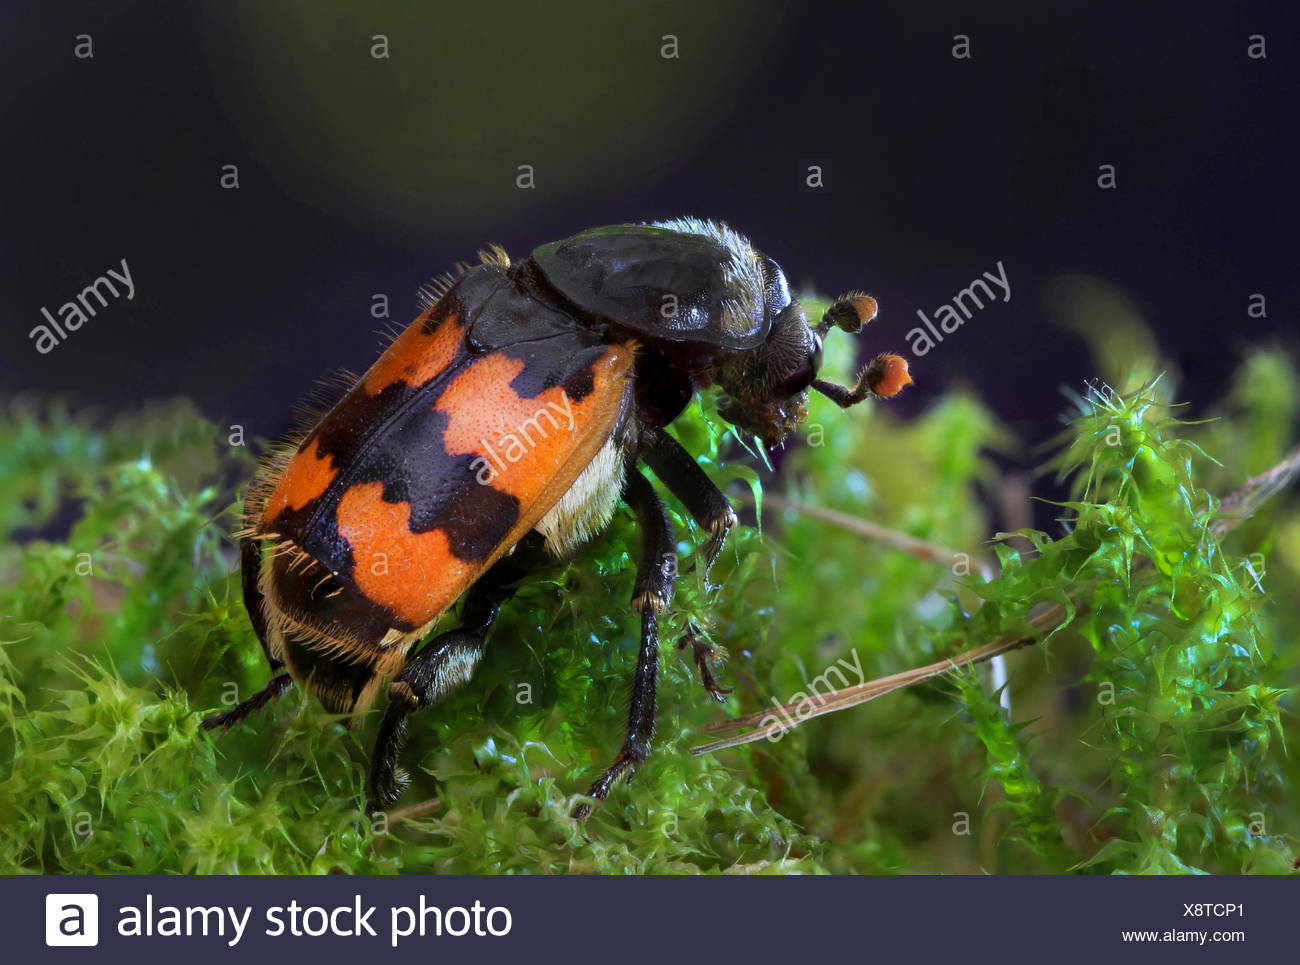 Burying Beetle (Necrophorus vespillo), on moss - Stock Image